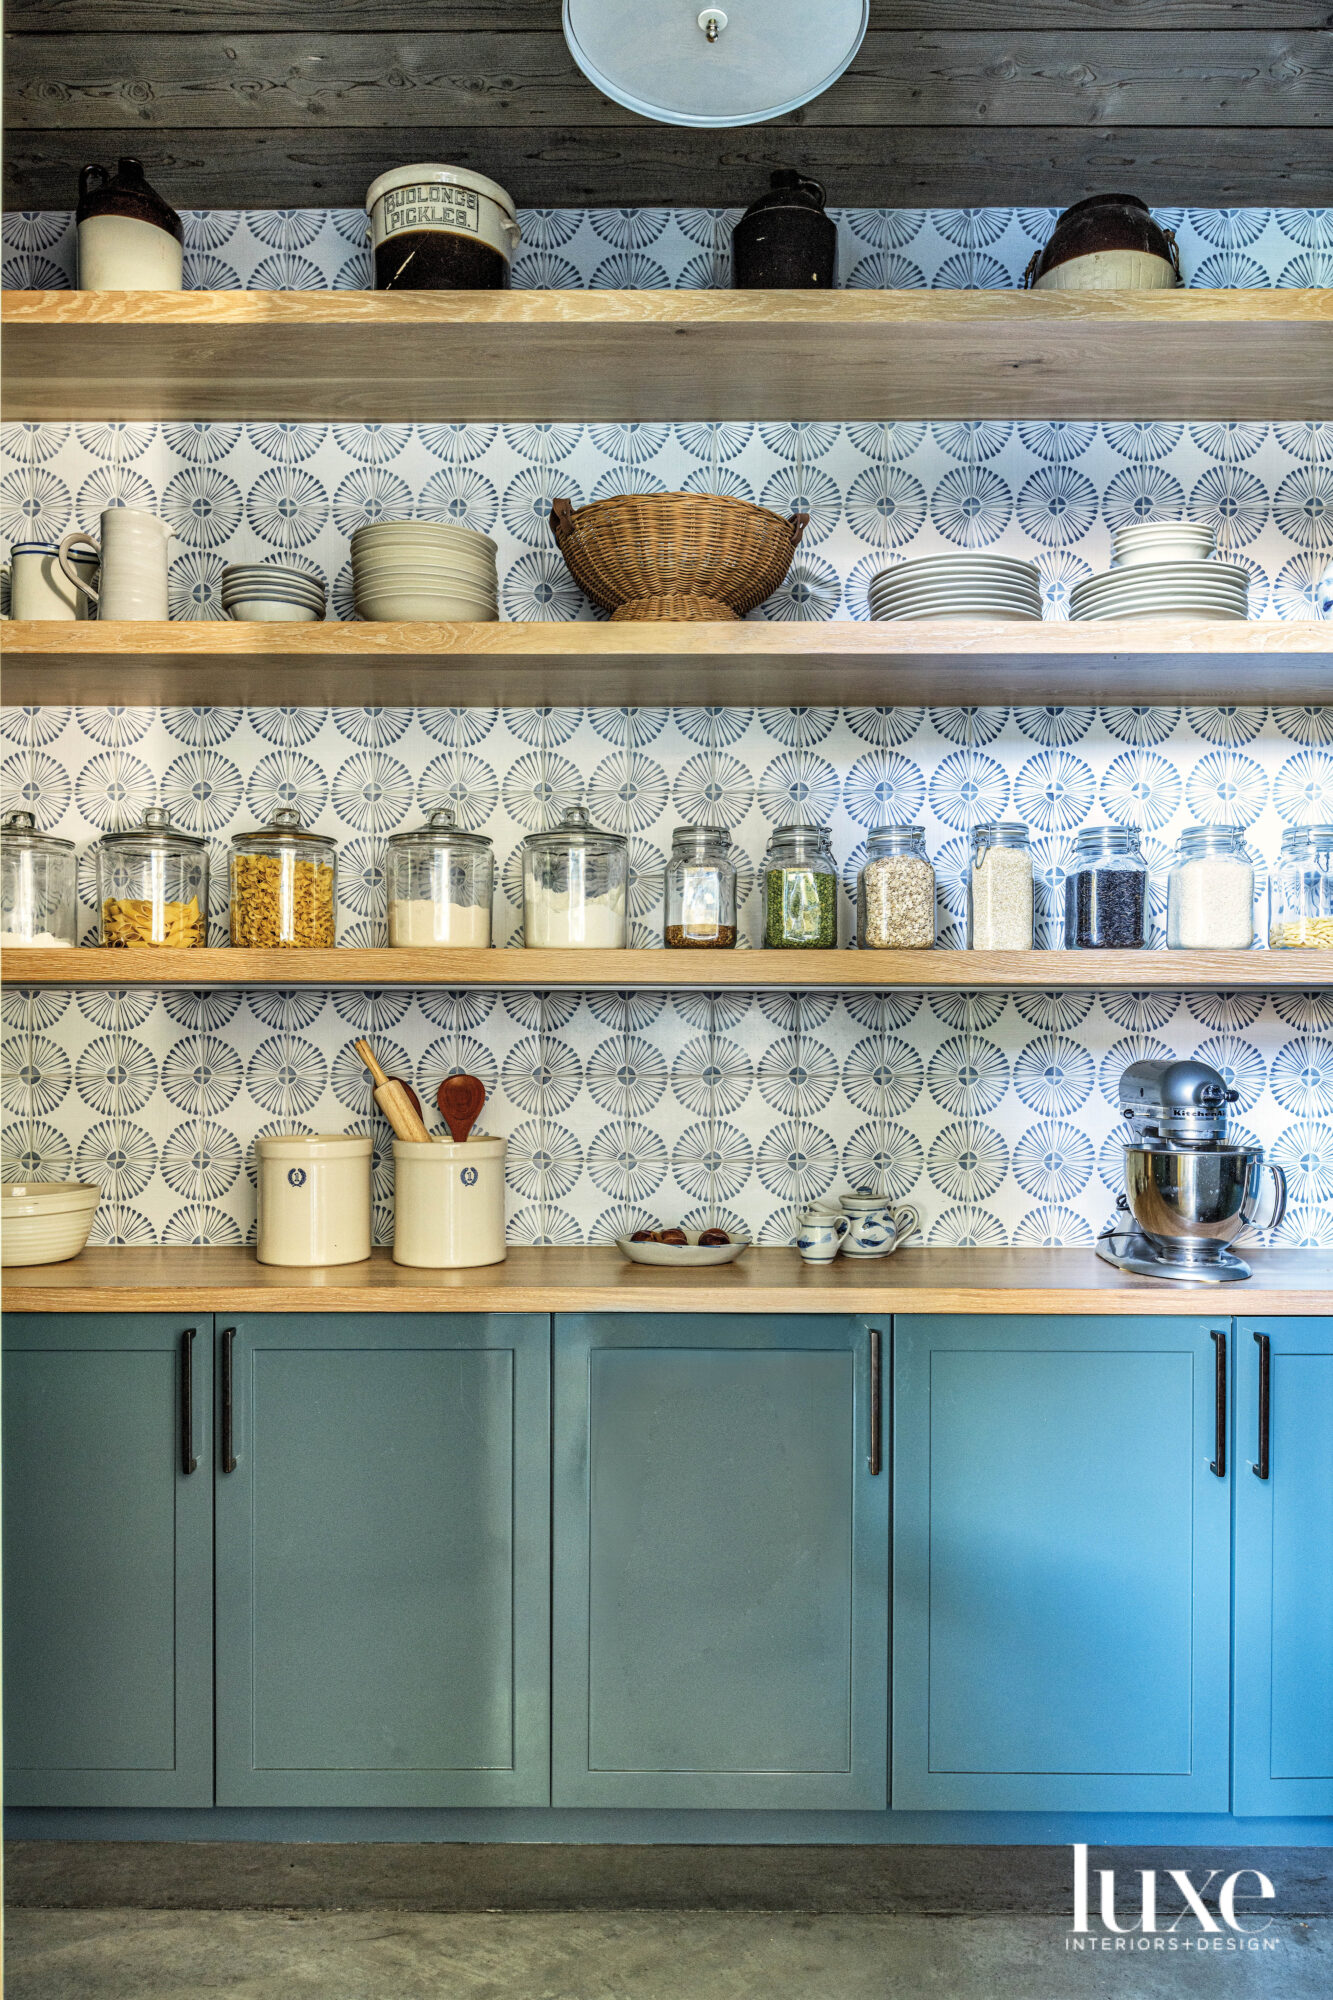 Pantry with tiled back and blue painted lower cabinets